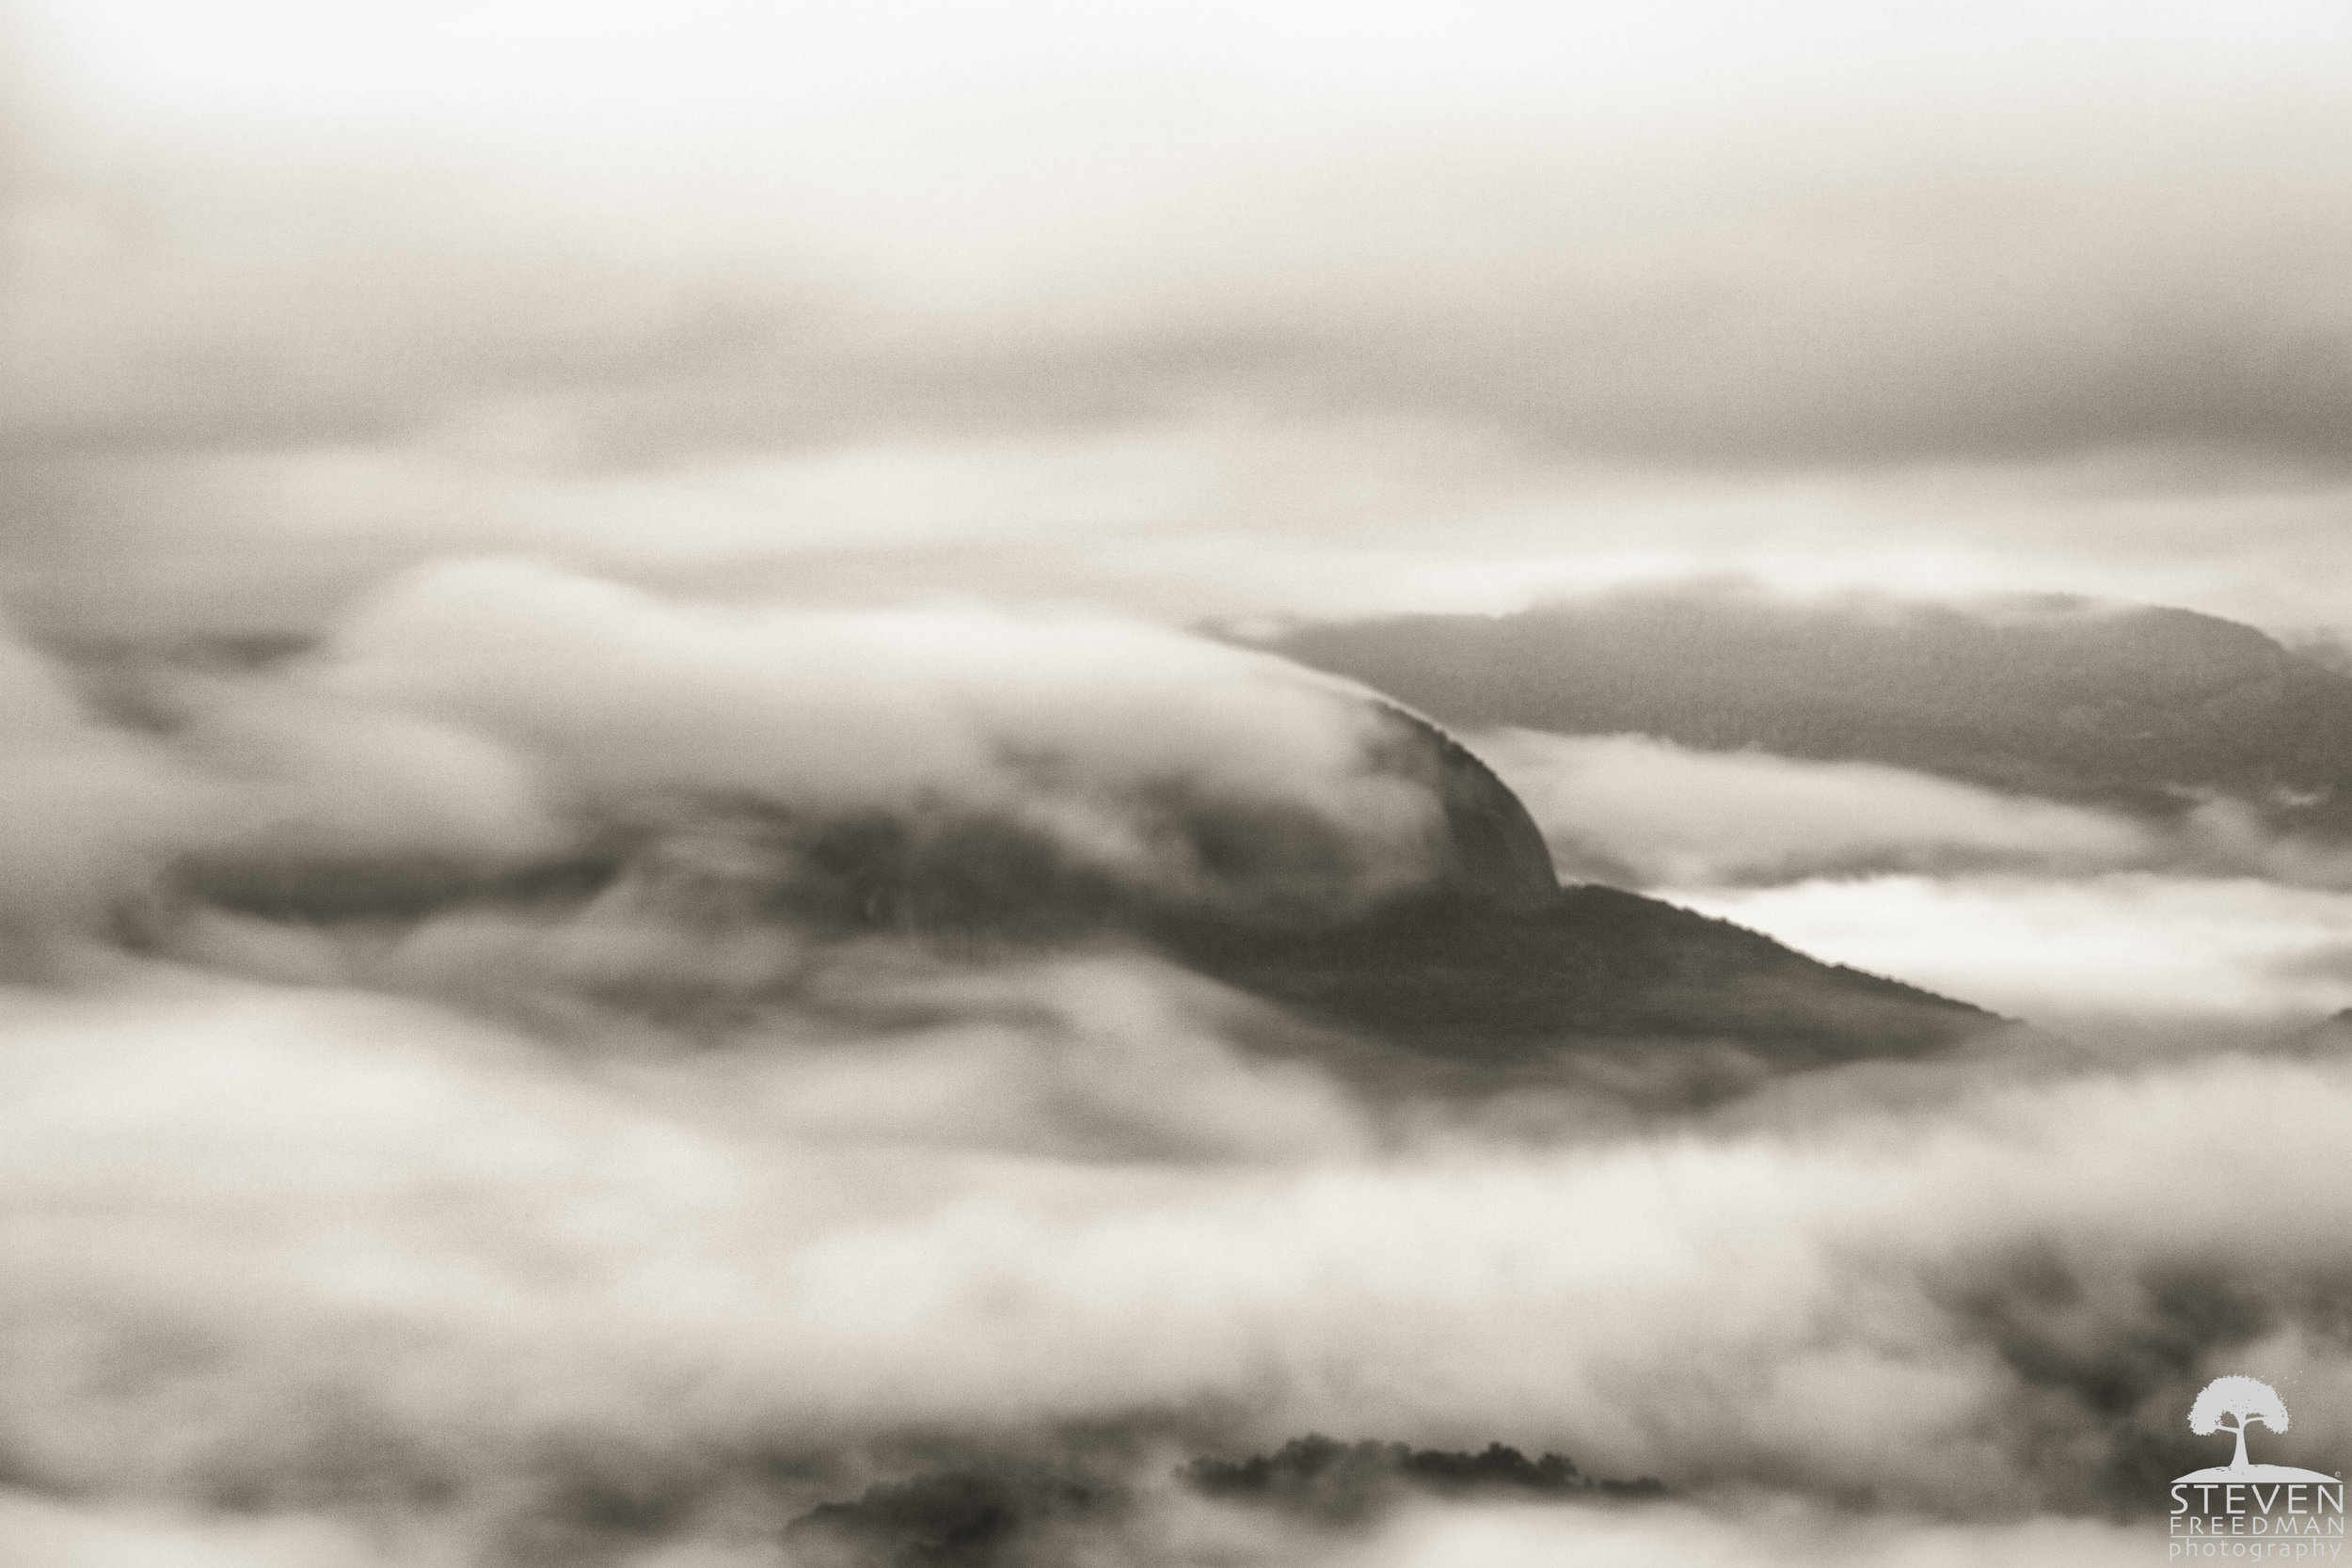 Looking Glass Rock Shrouded in Fog (B and W)